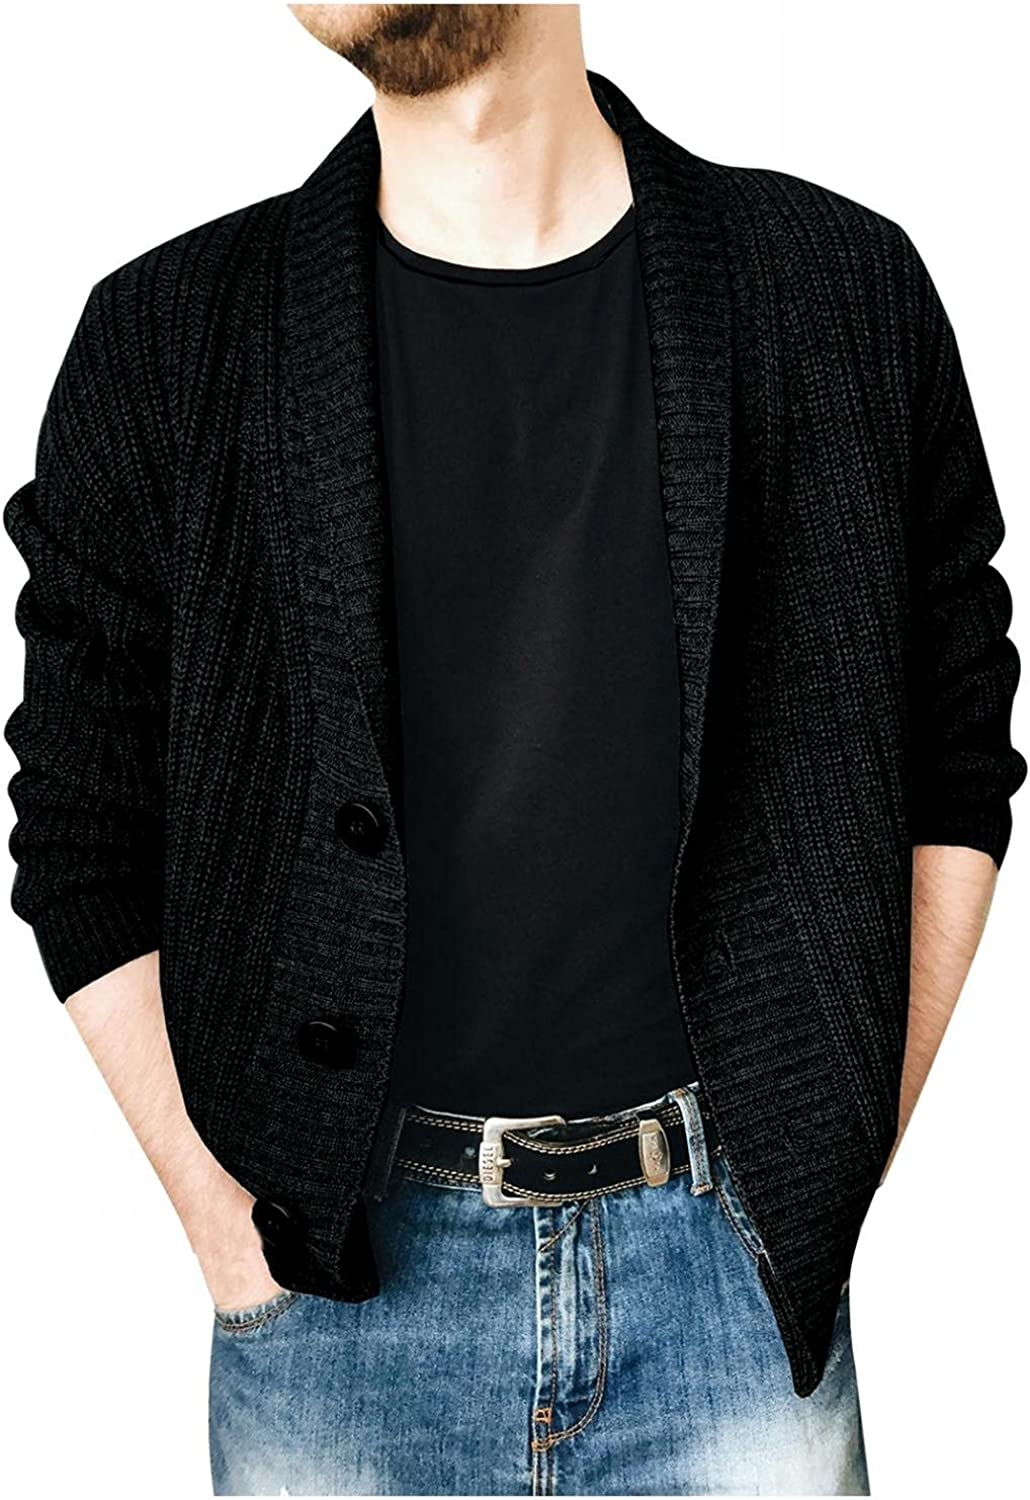 XUNFUN Men's Shawl Collar Cardigan Sweaters Cable Knitted Button Up Casual Winter Thermal Long Sleeve Solid Sweater Knitwear